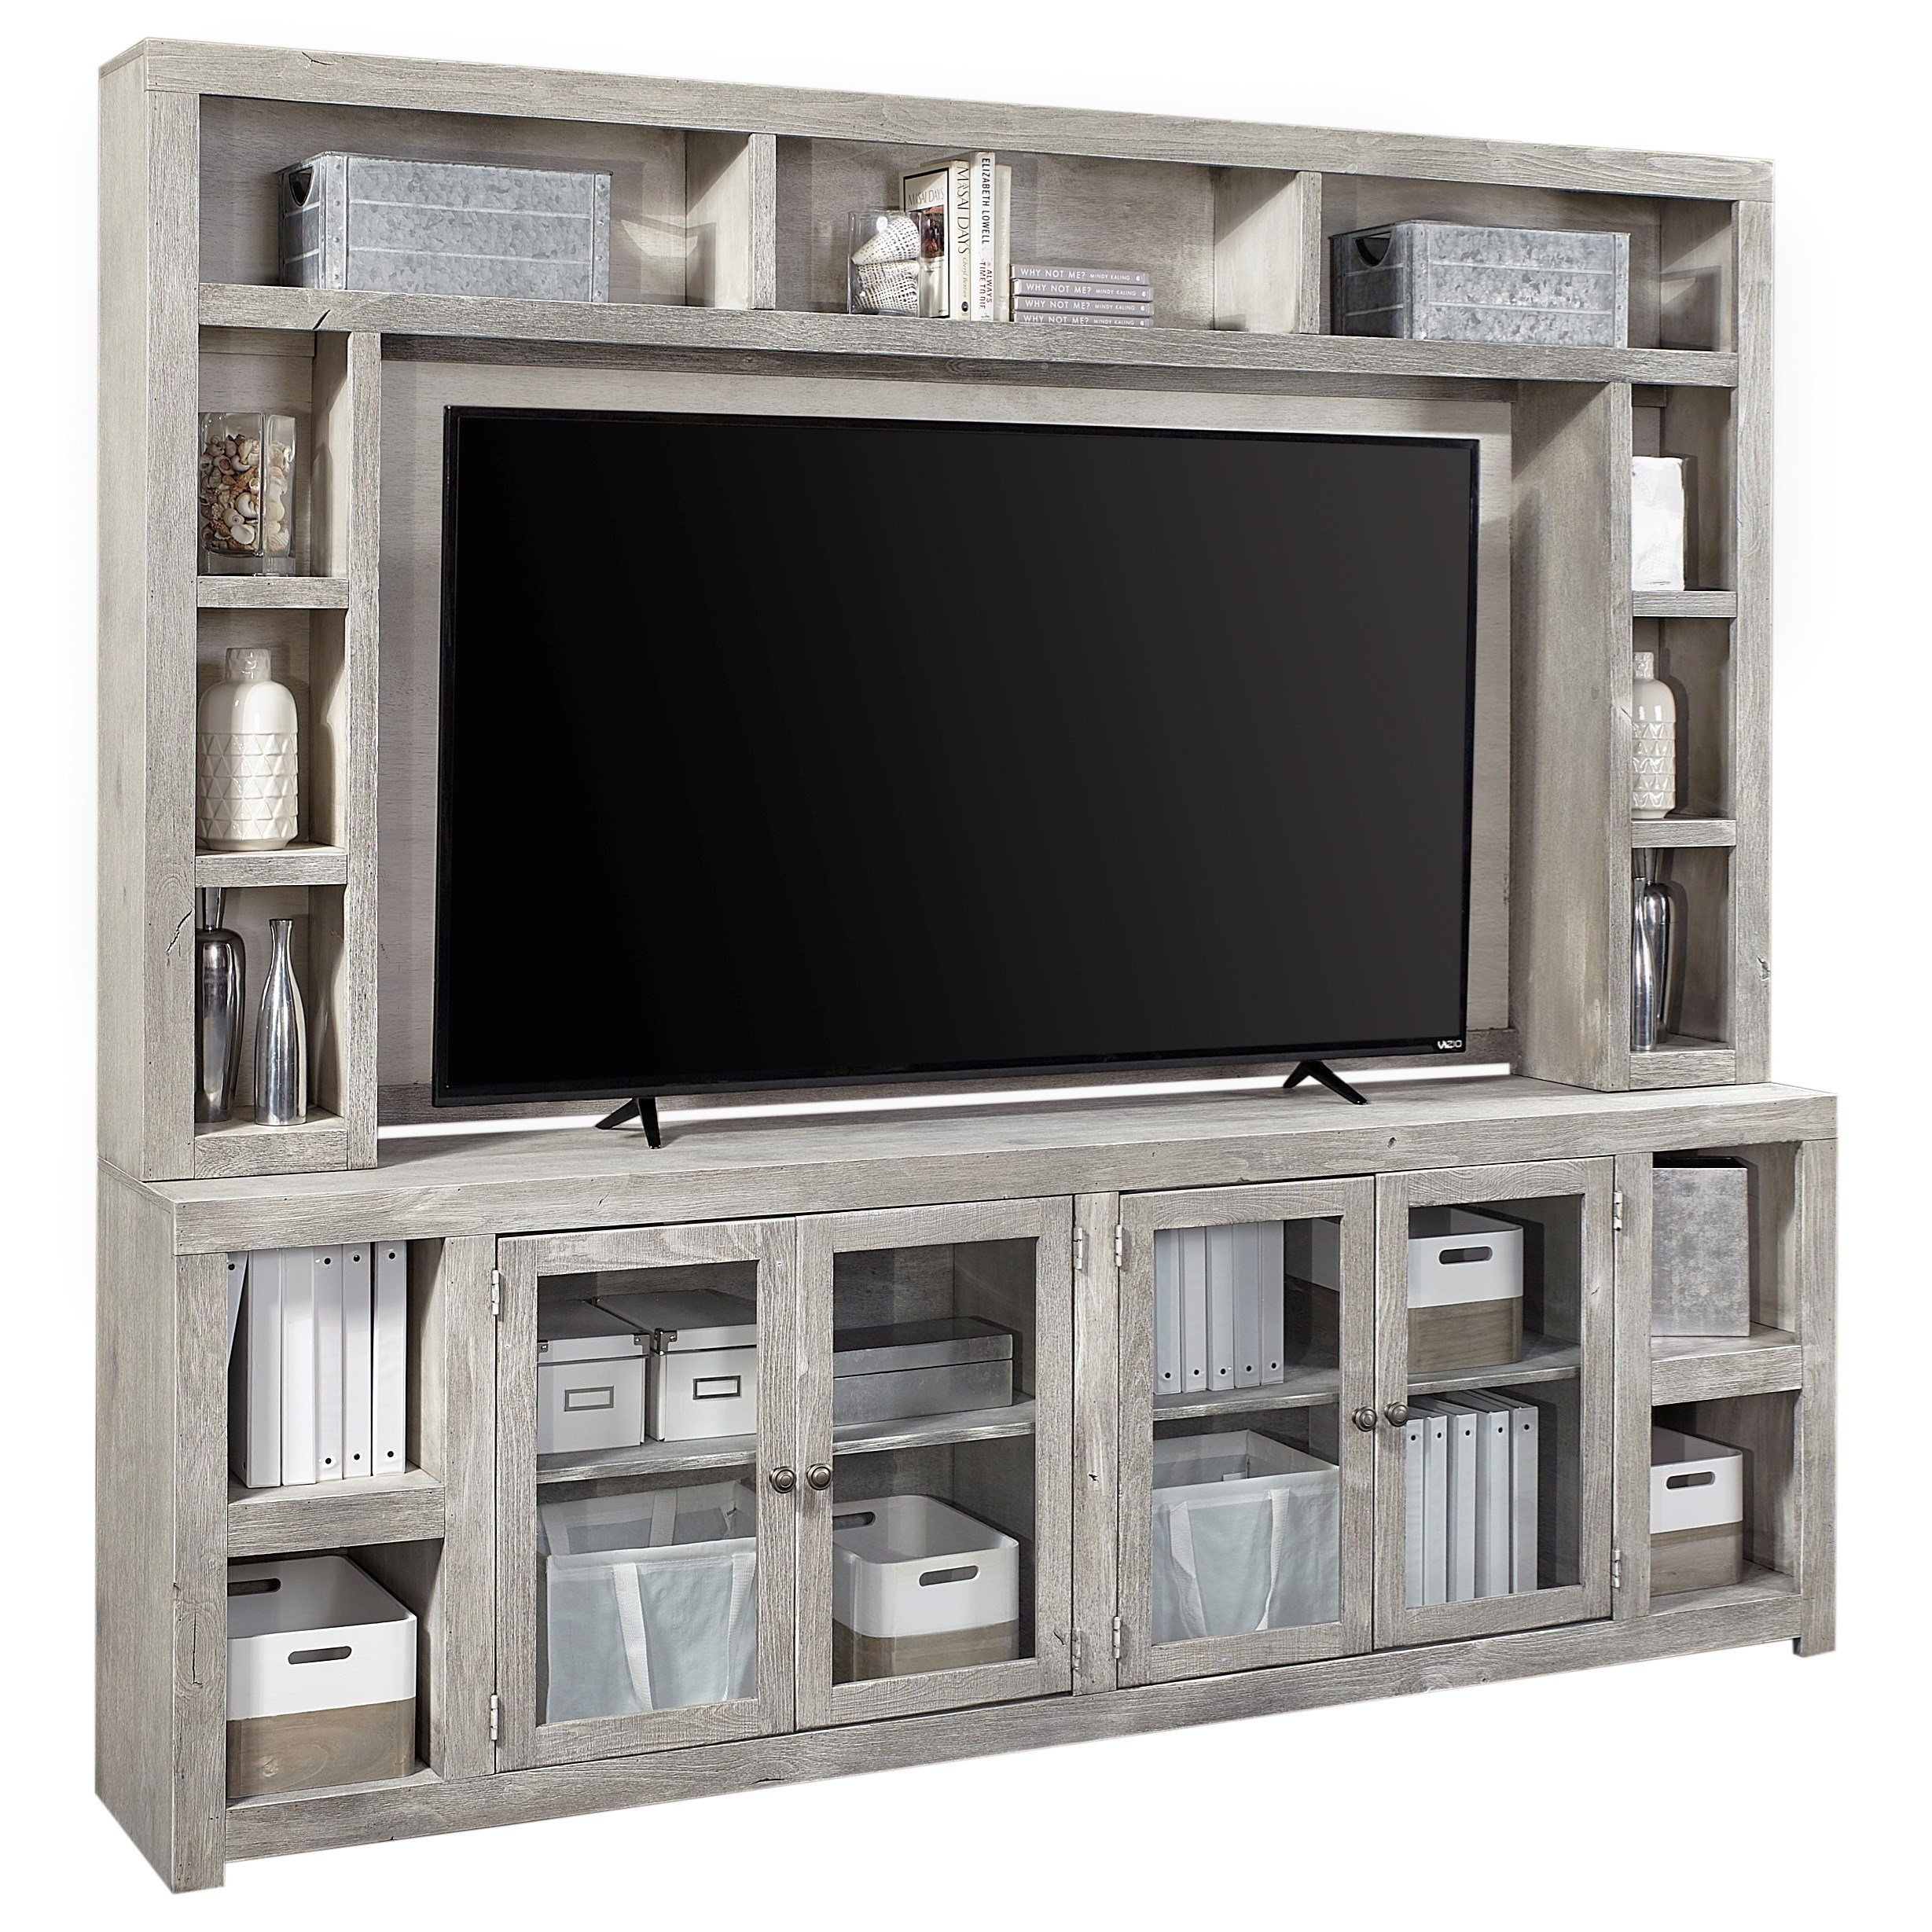 """Avery Loft 97"""" Console and Hutch by Aspenhome at Stoney Creek Furniture"""